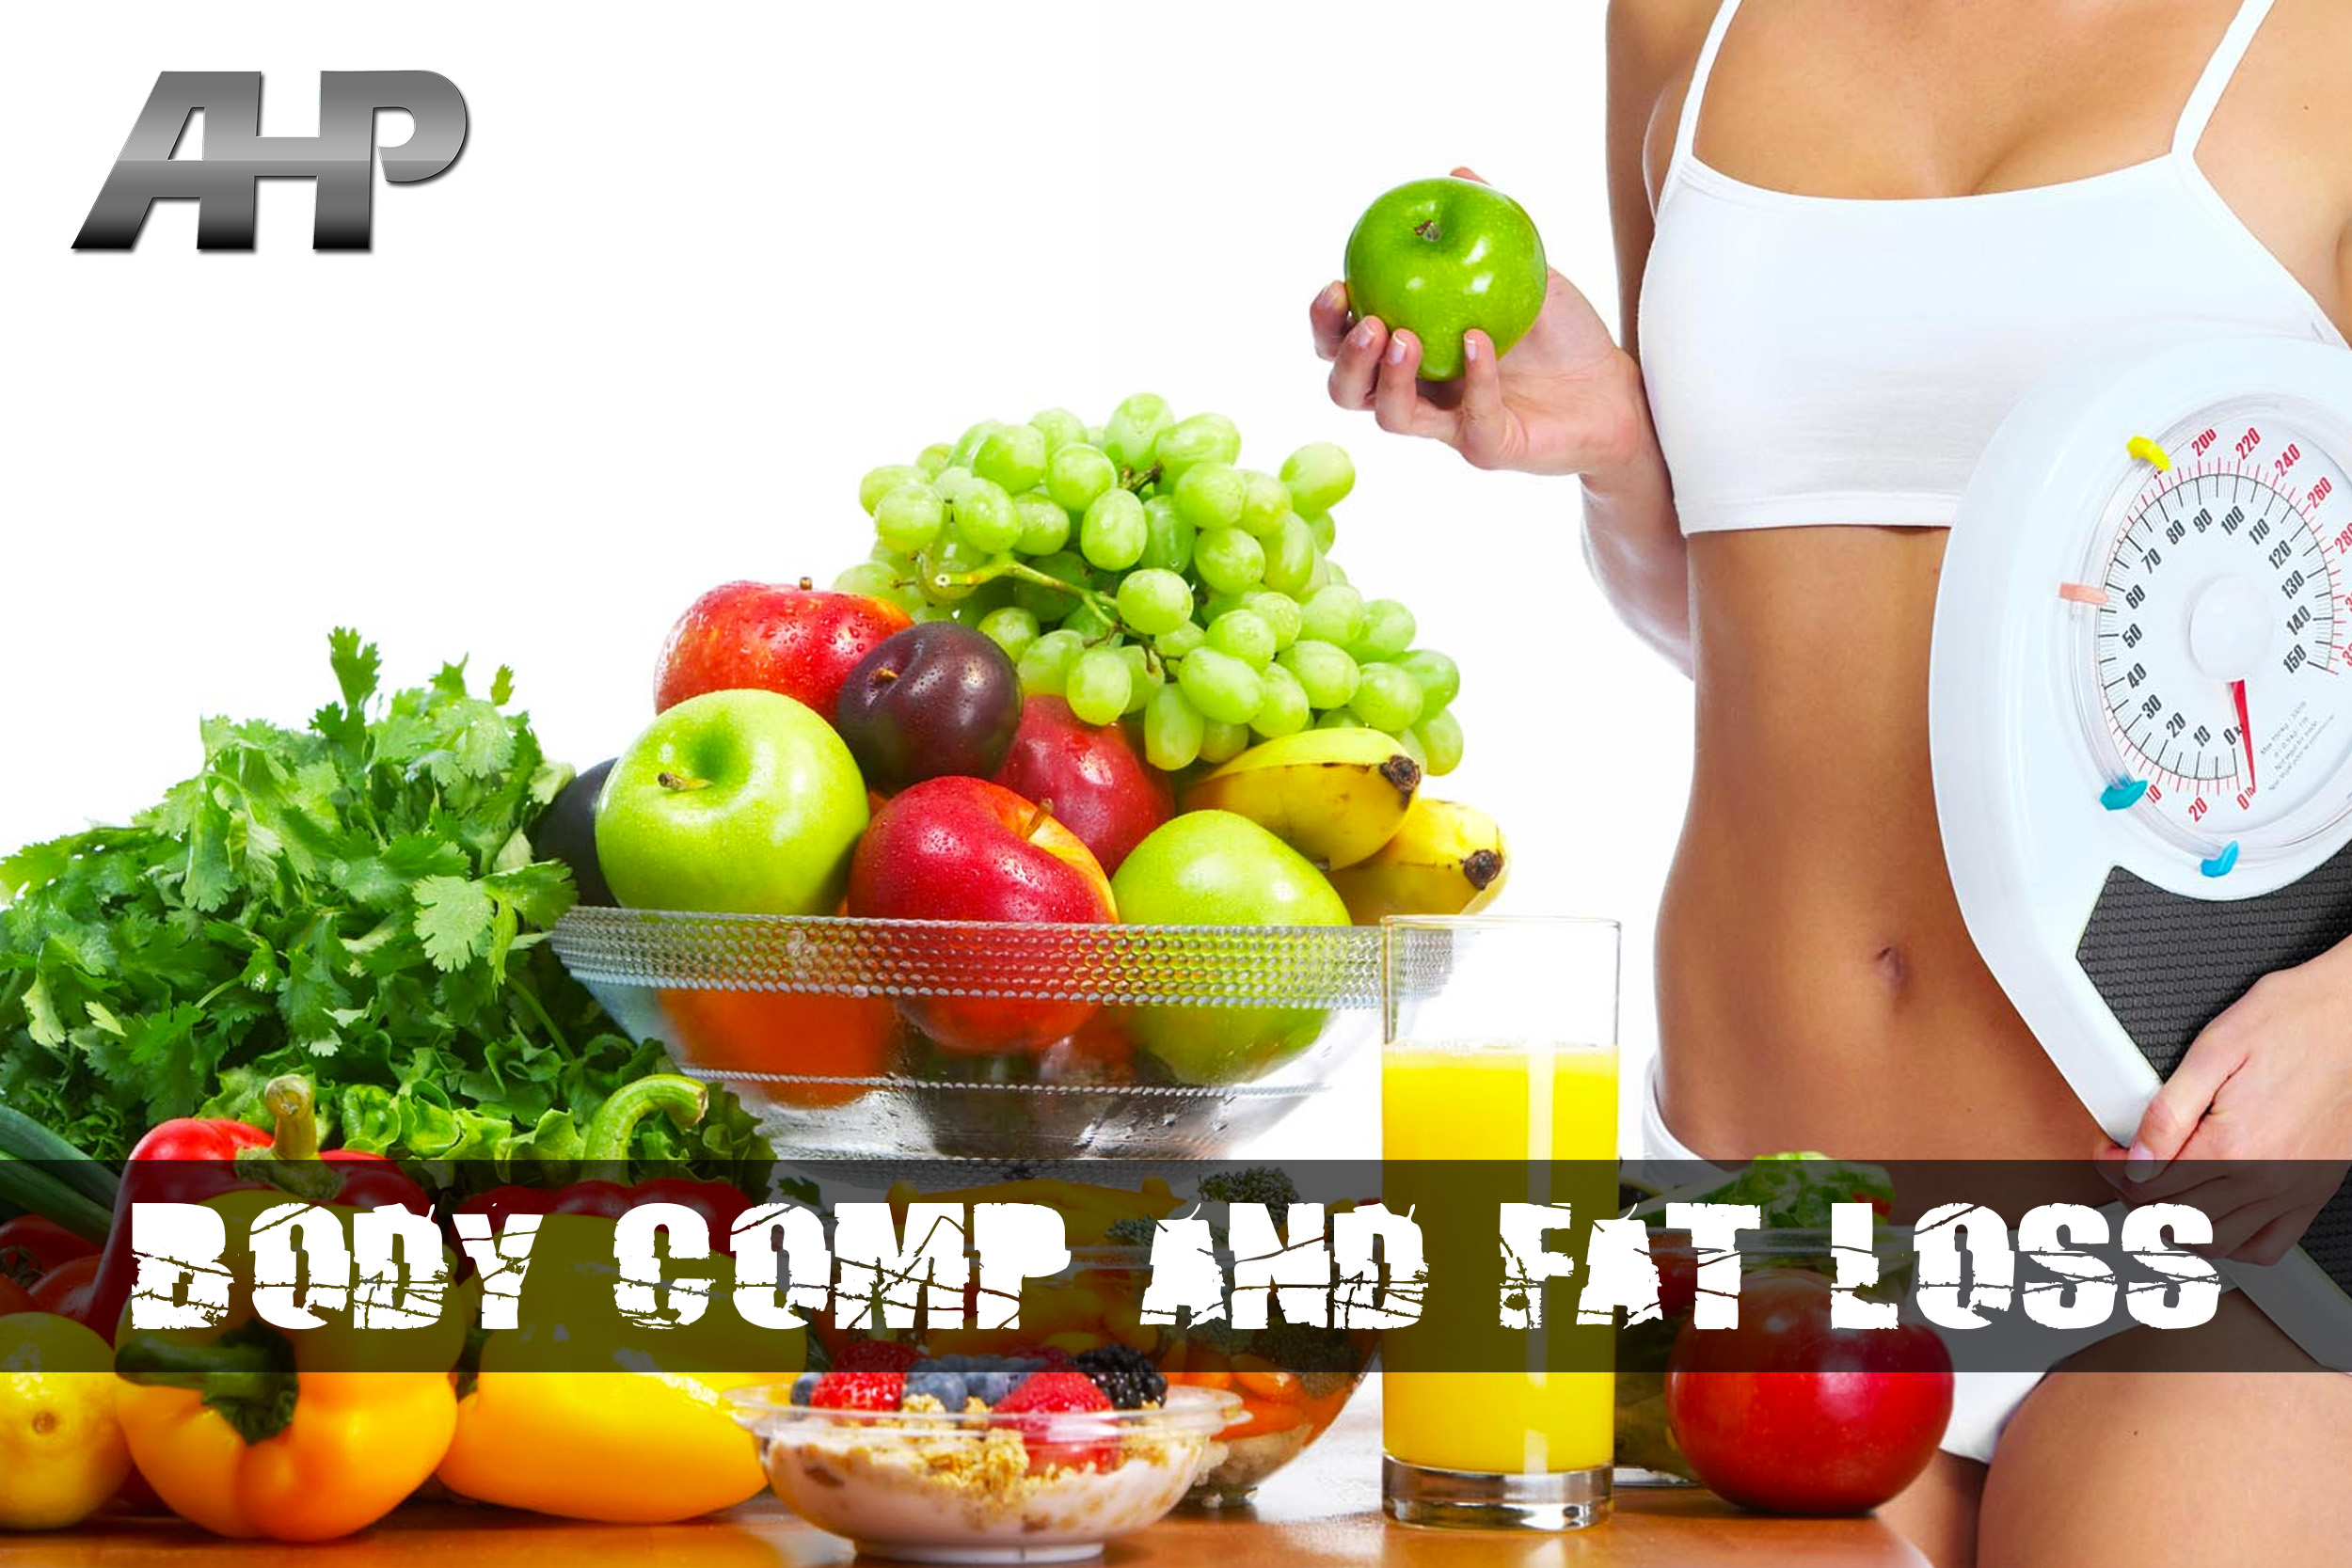 Body Comp & Fat Loss - AHP.jpg